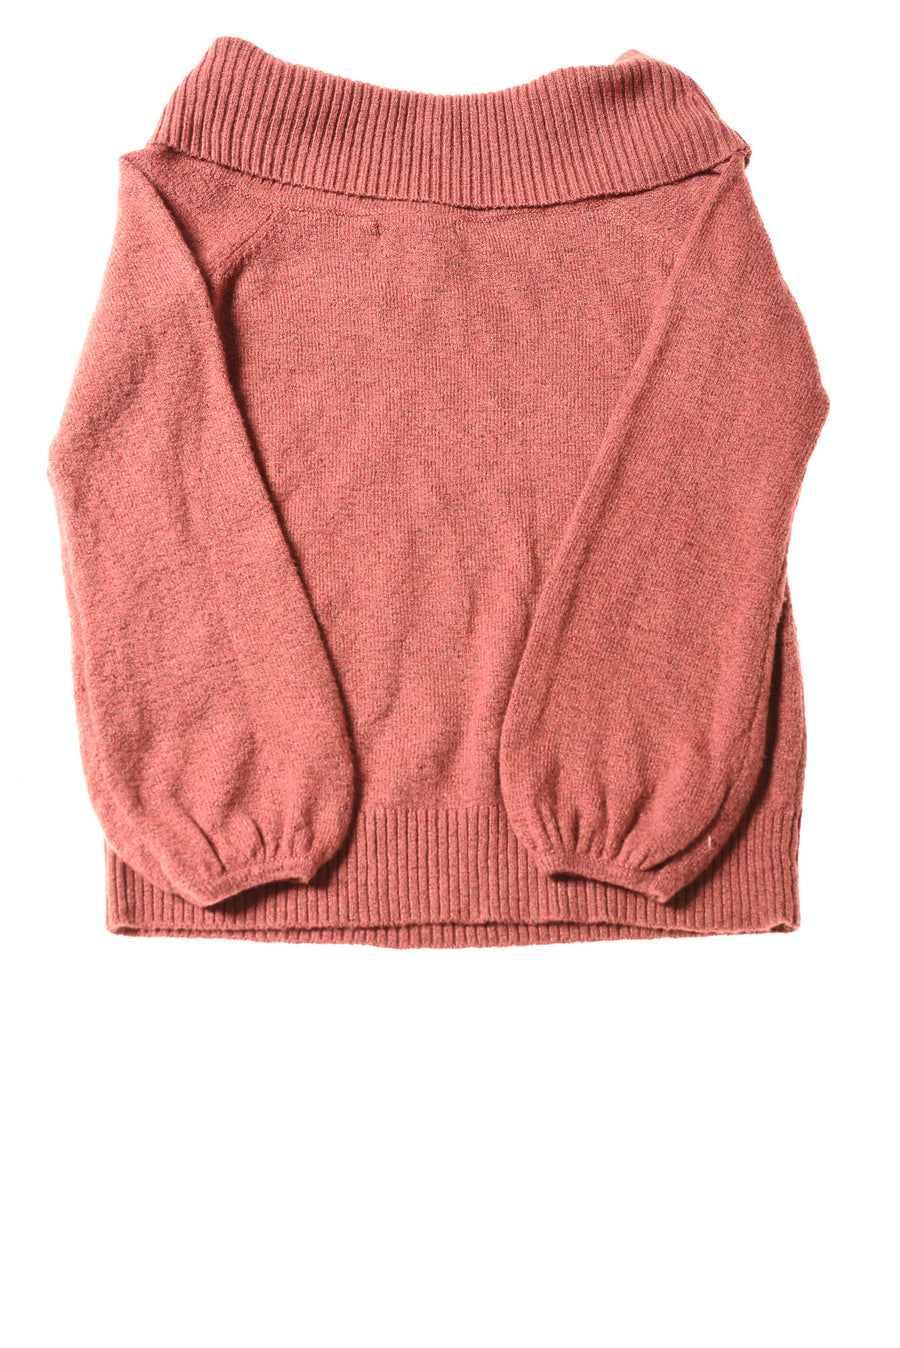 USED American Eagle Outfitters Women's Sweater X-Small Mauve